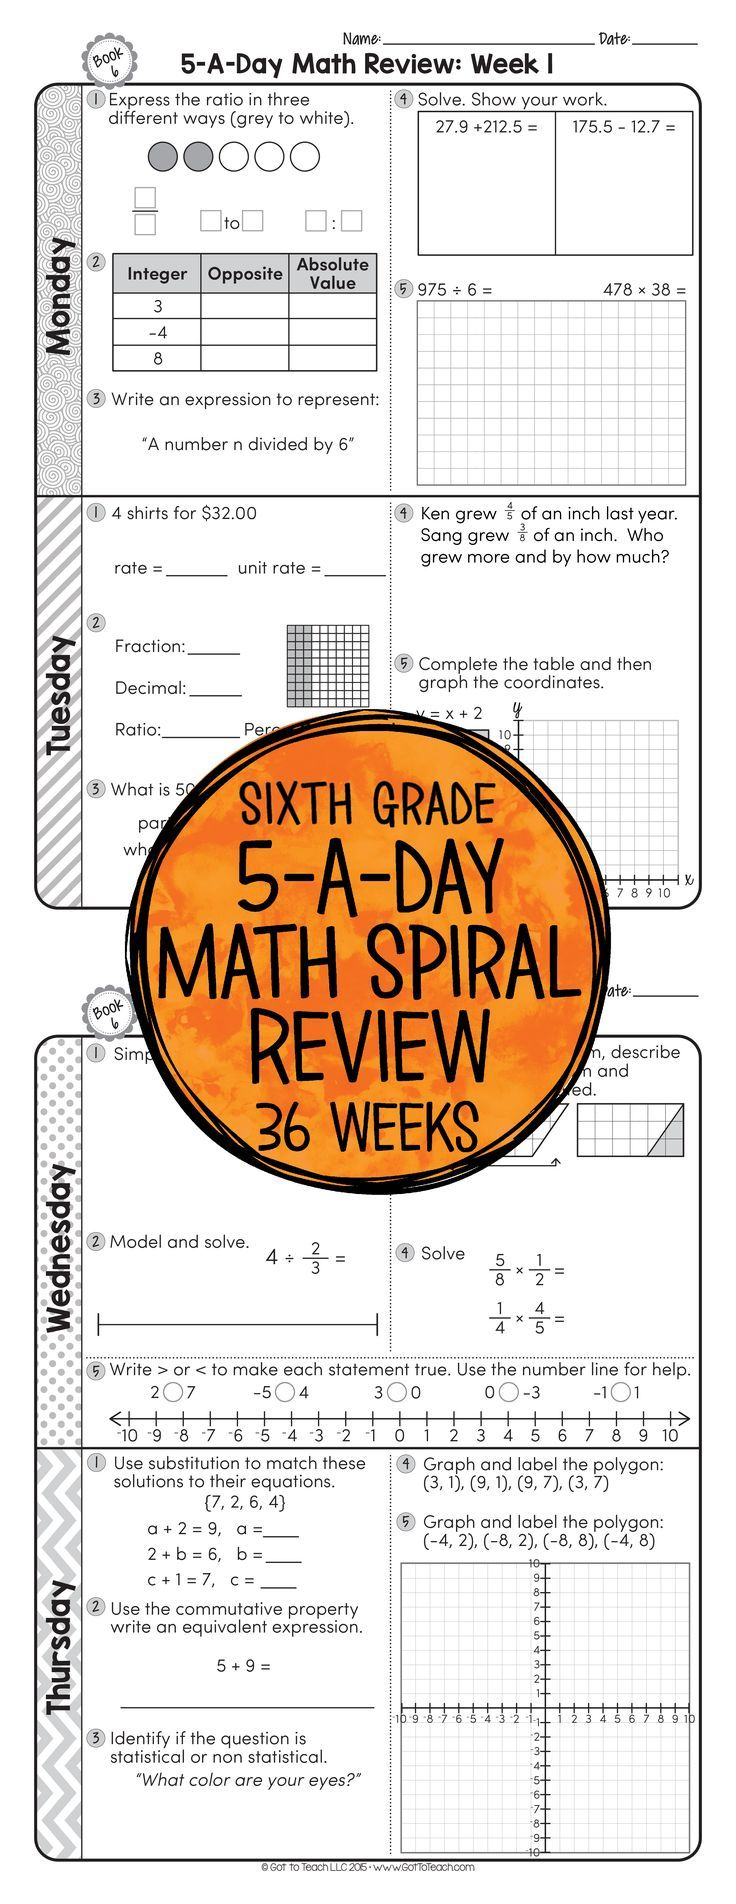 6th Grade Daily Math Spiral Review Morning Work EDITABLE